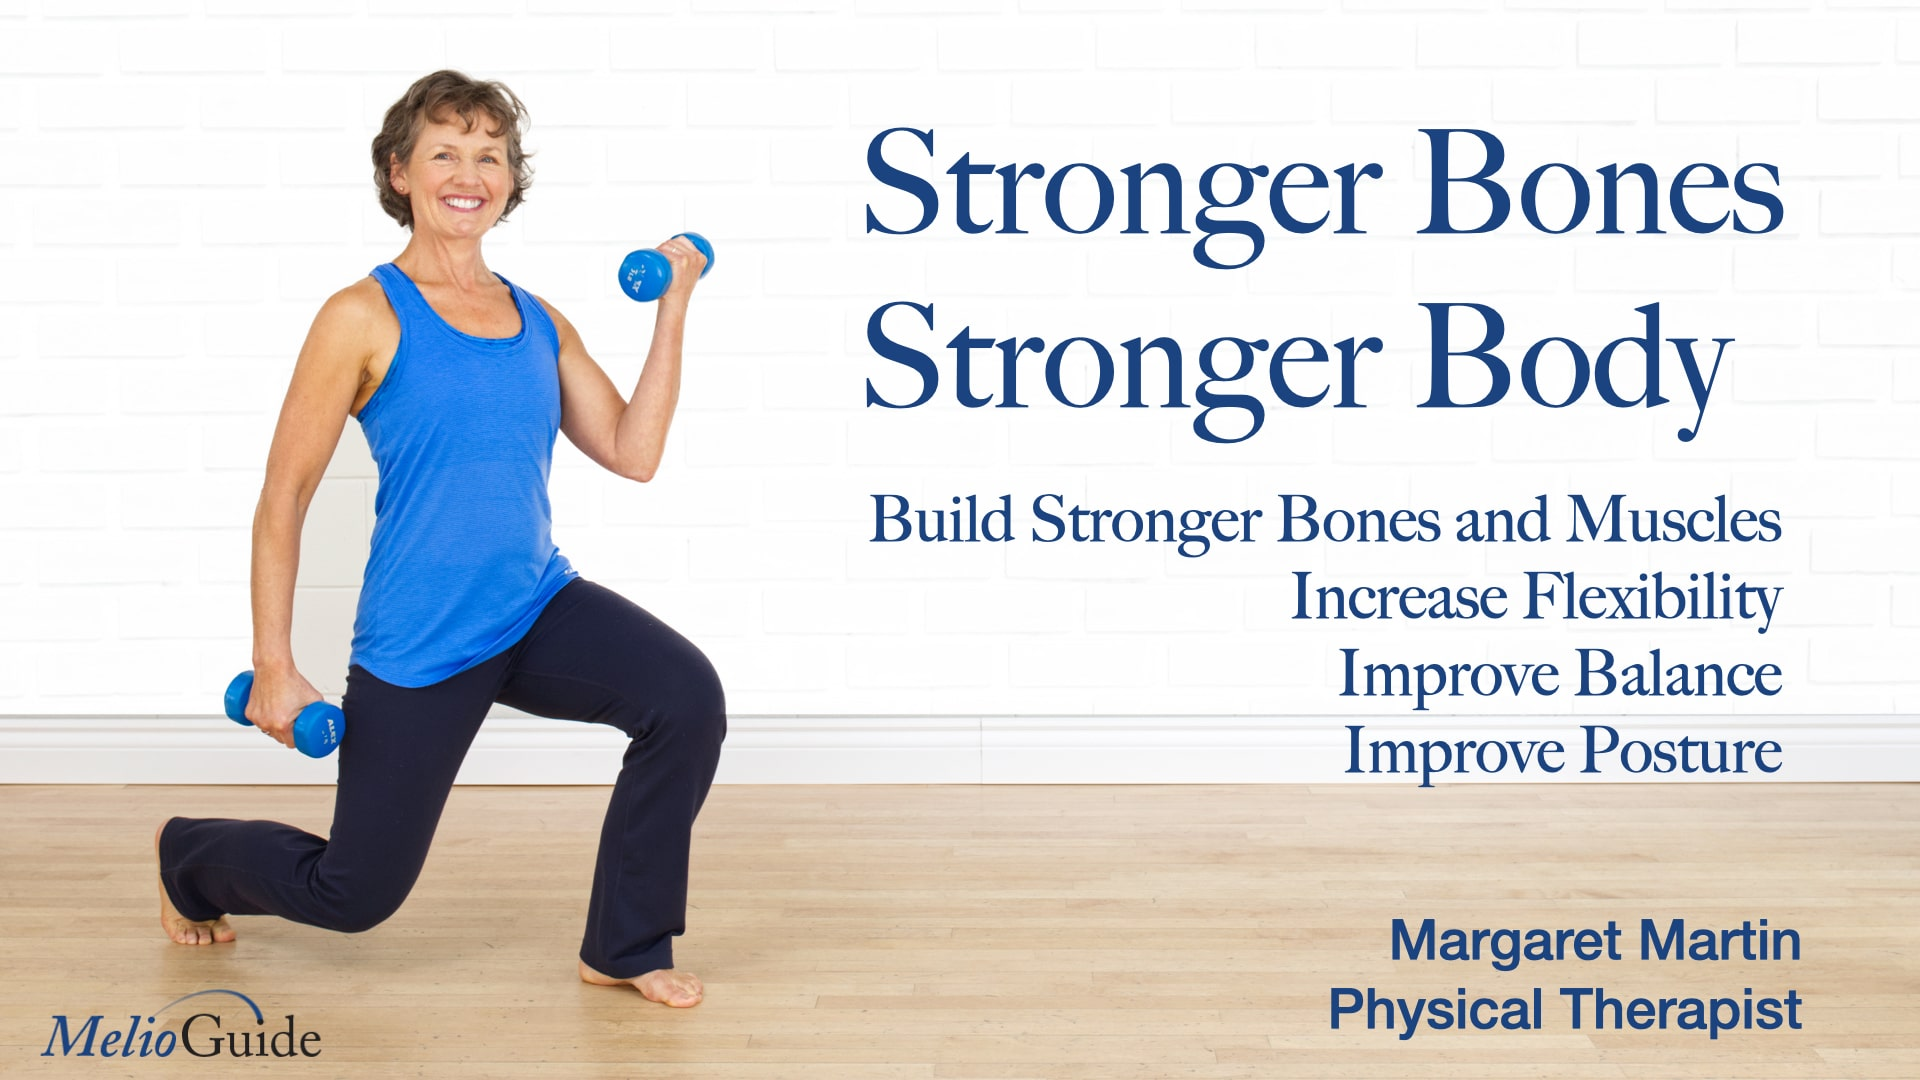 stronger bones, stronger body exercise video by physiotherapist margaret martin